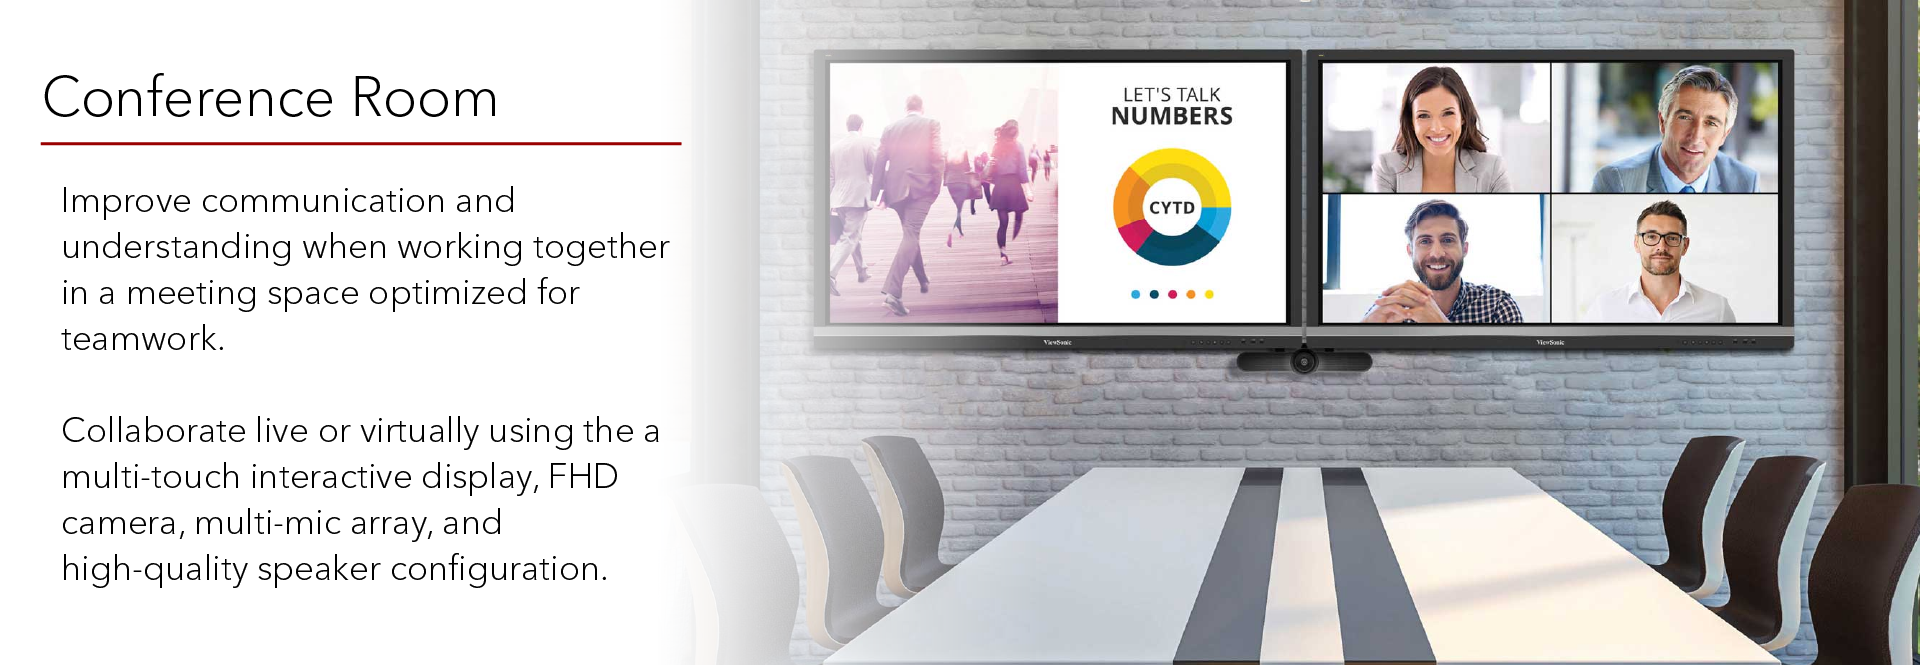 ViewBoards are great for large-format displays in conference room setups, with large, clear, bright screens and easy user interface and connectivity. Collaborate with multi-touch interactive displays, and add on a mic and camera systems